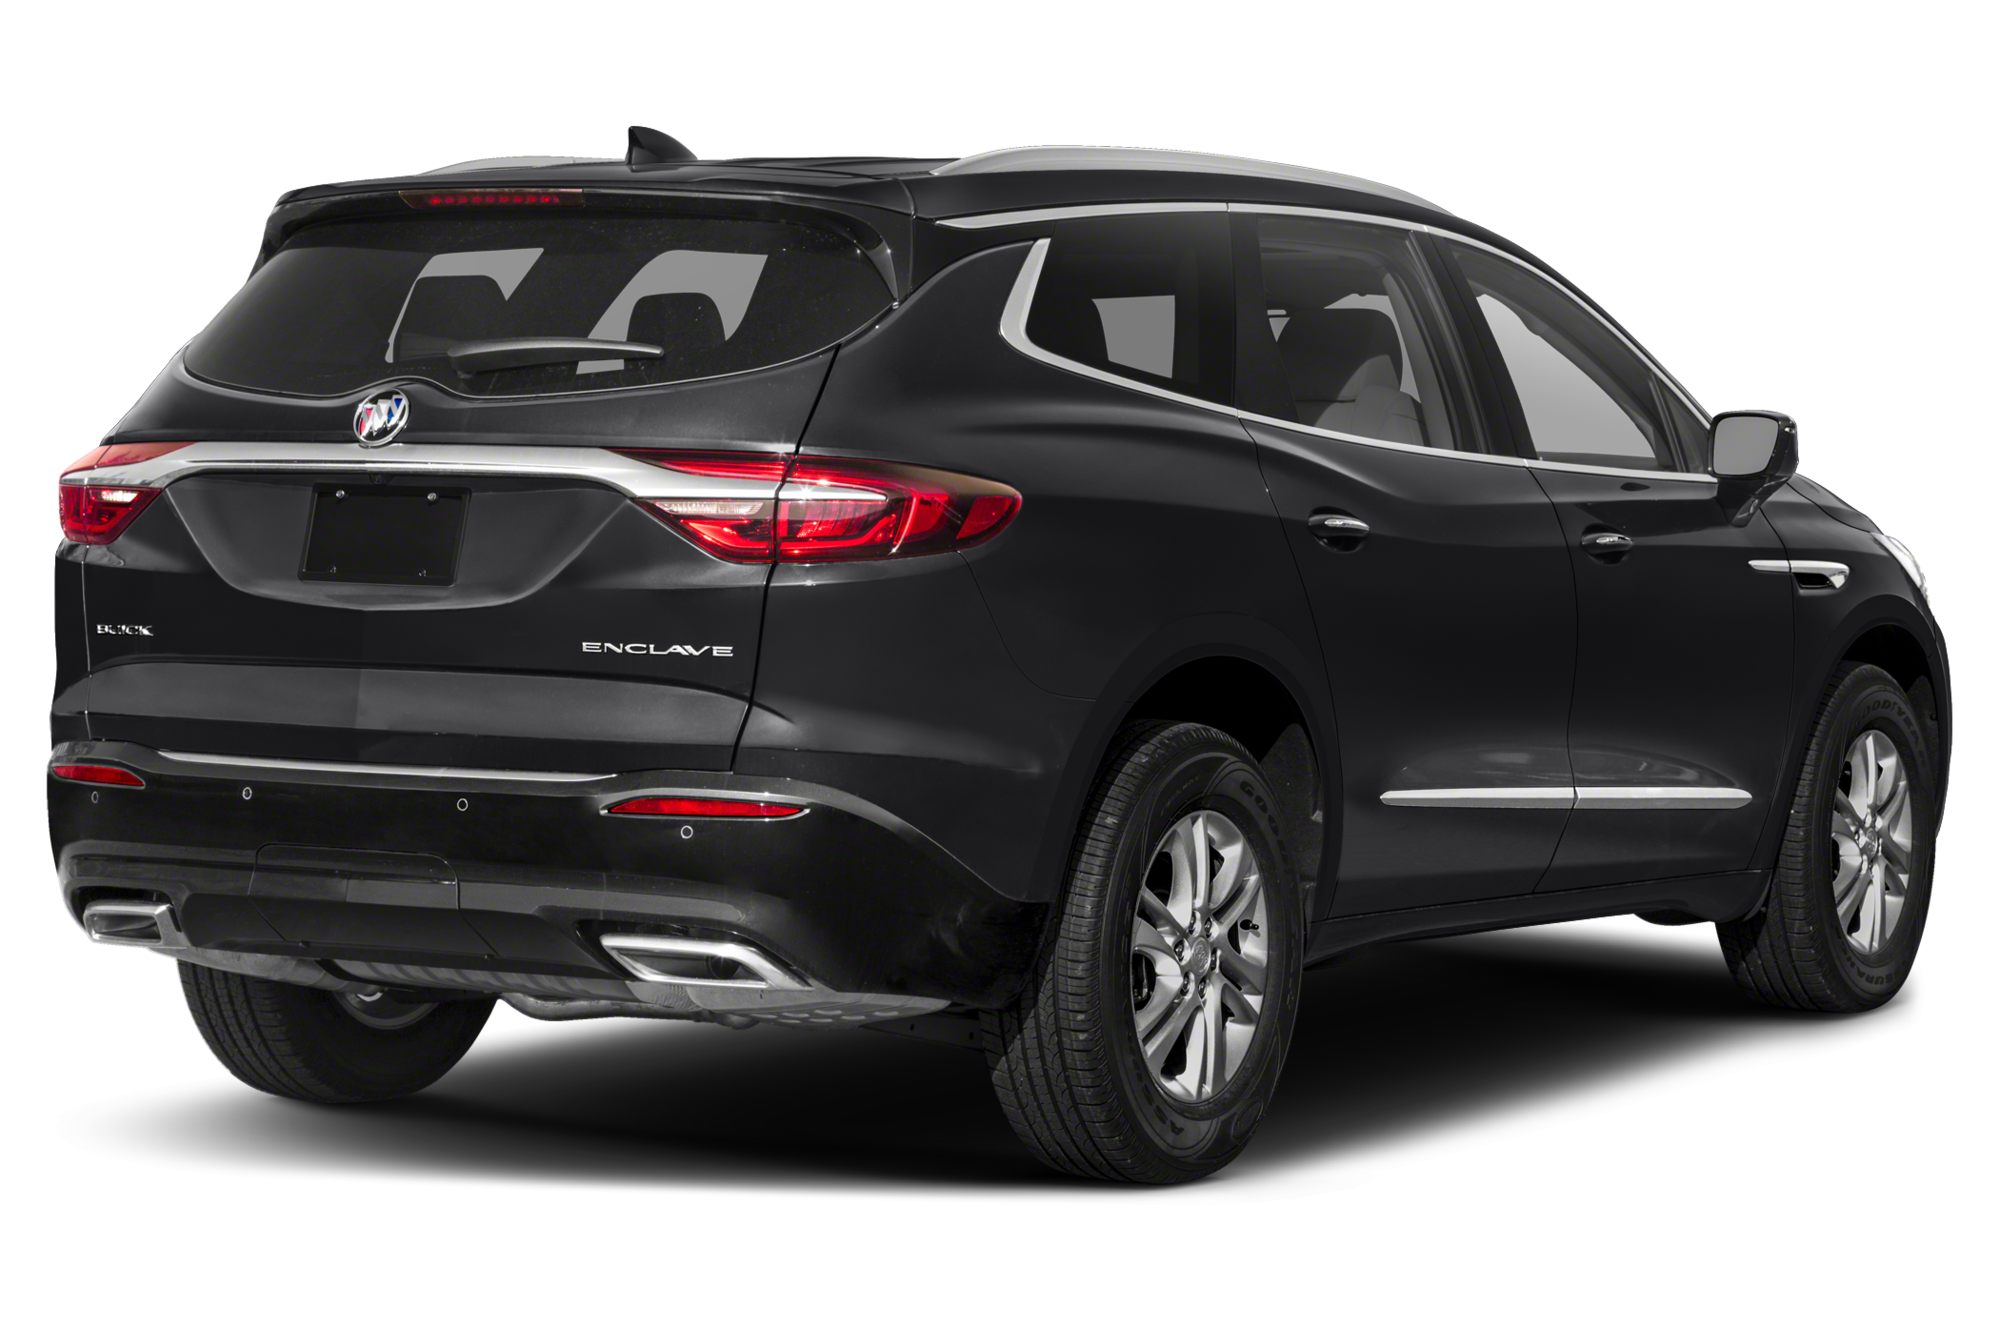 2020 Buick Enclave, Chevrolet Traverse: Recall Alert